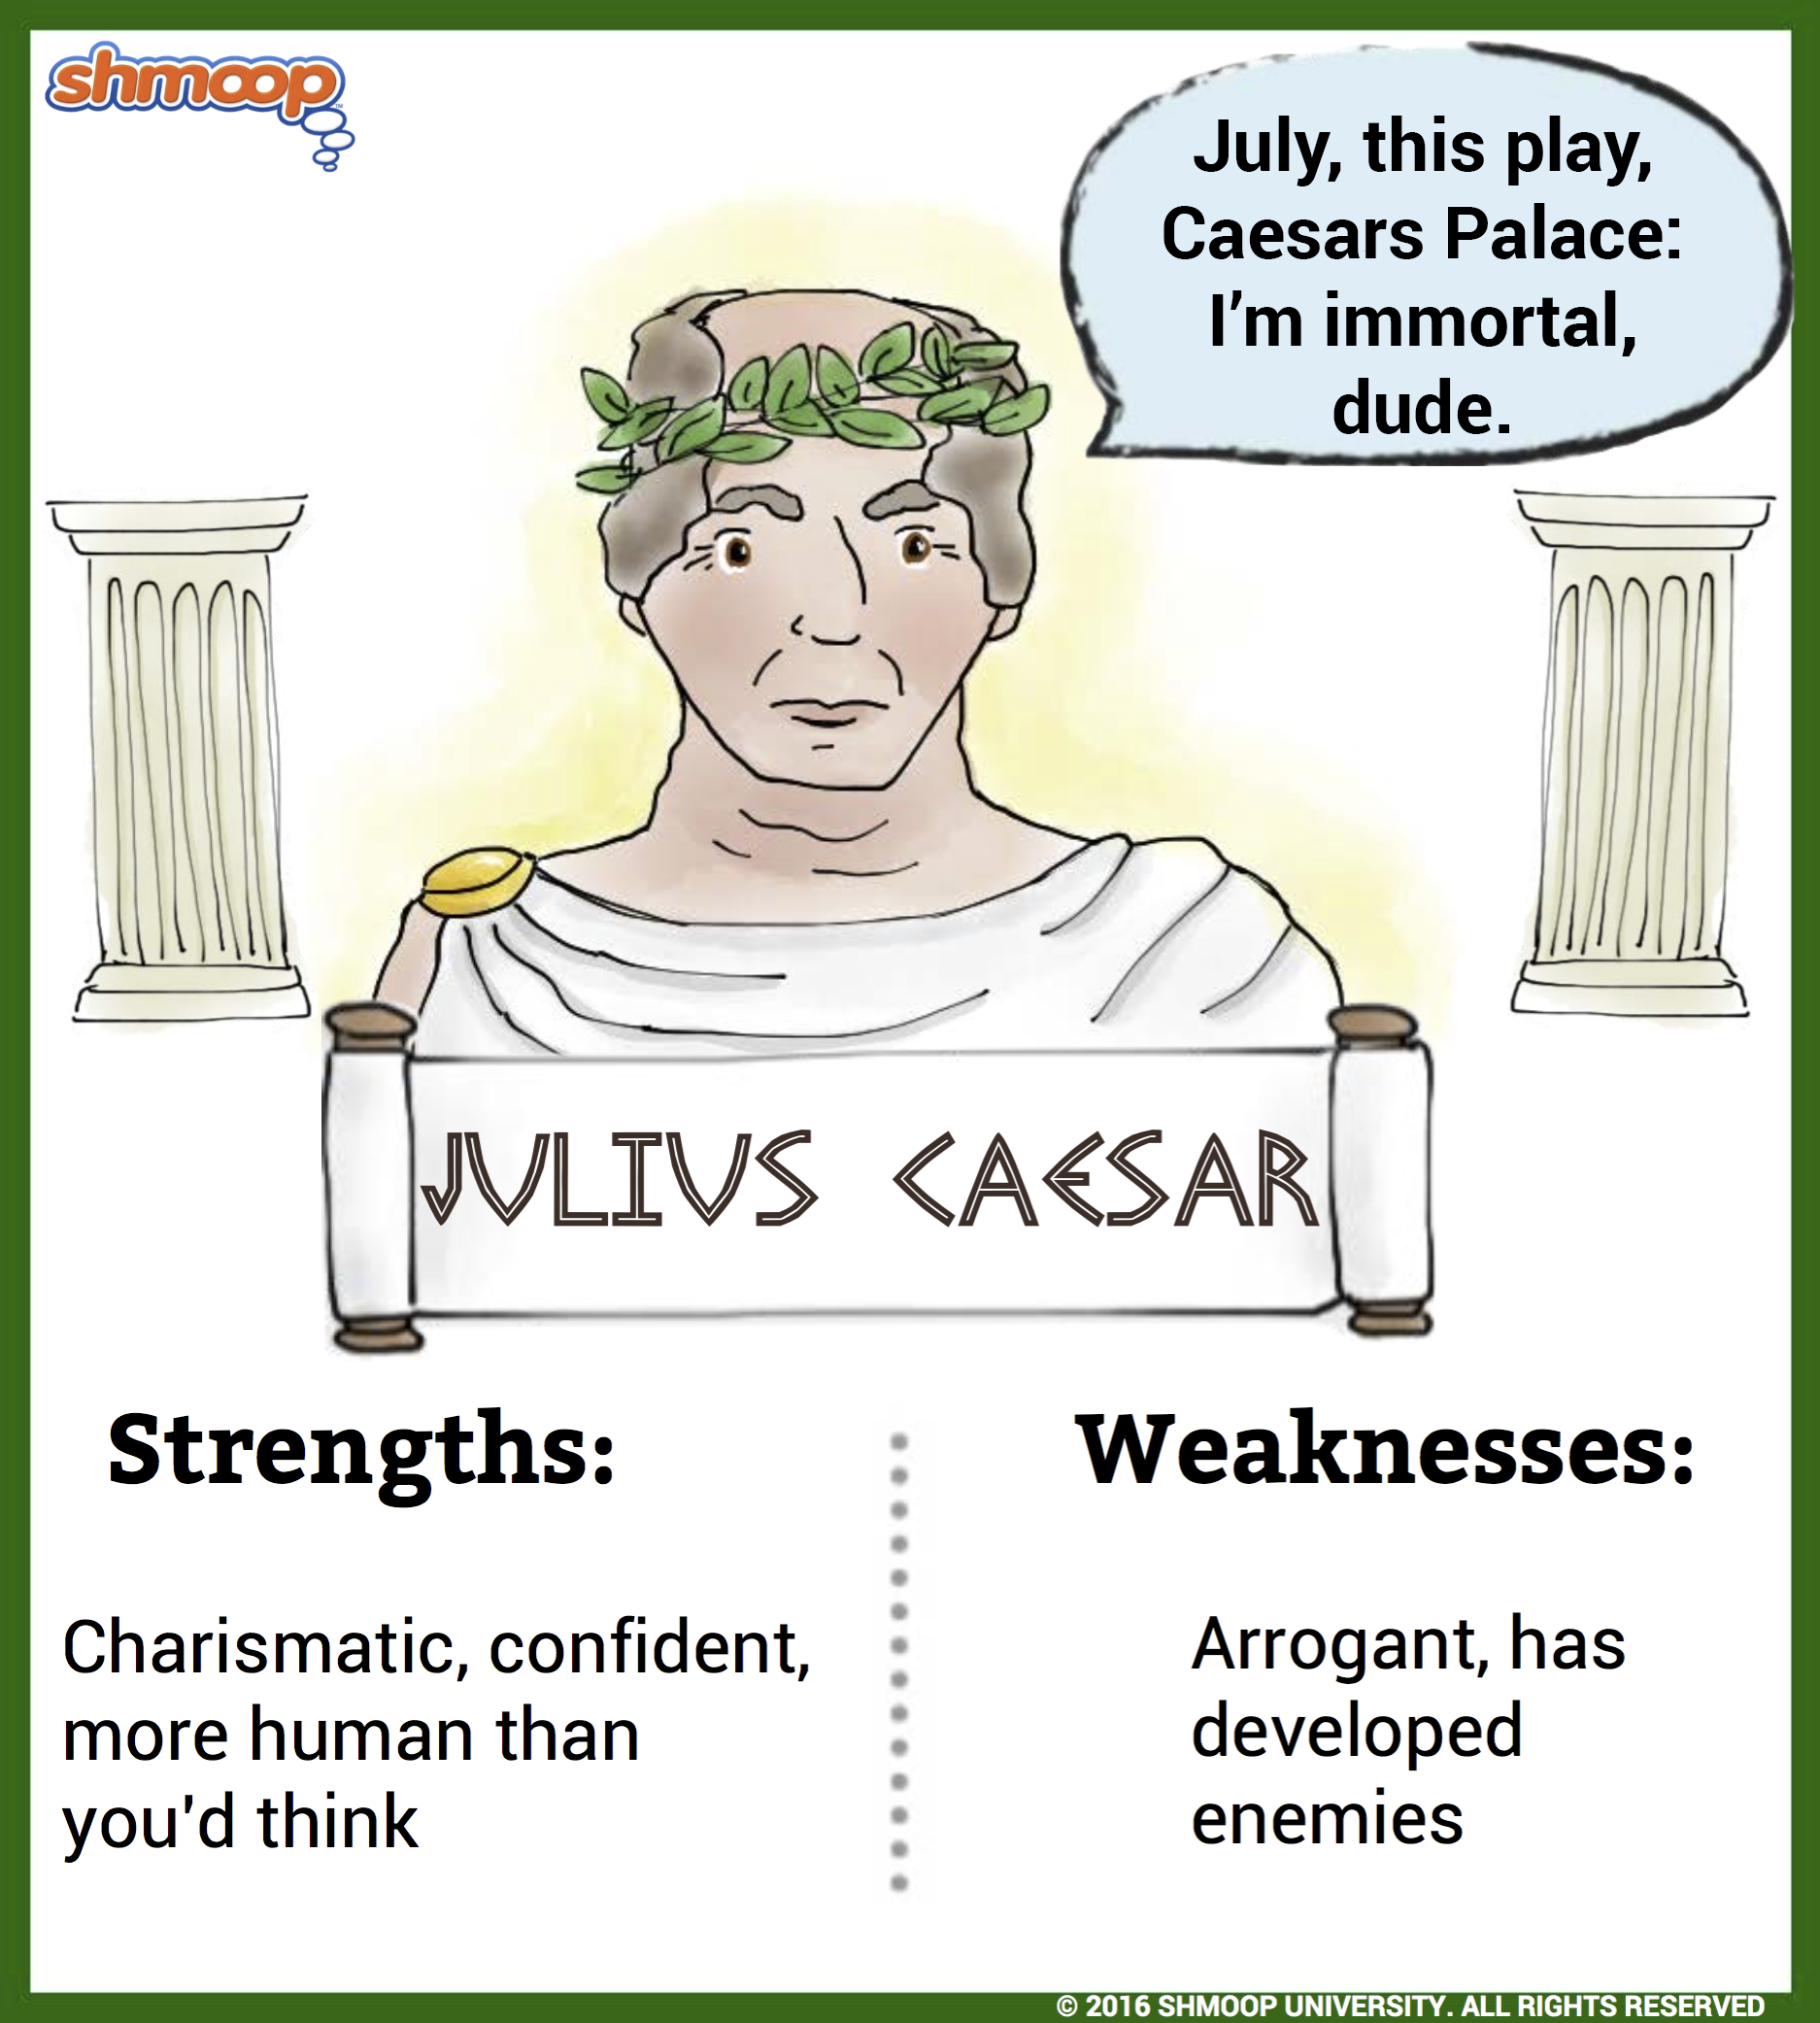 julius caesar shakespeare analysis themes power manipulati When it seems evident to the conspirators in shakespeare's play that julius caesar is headed for absolute power, he becomes a threat to the ideals and values of the roman republic in other words, he's voted off the island.